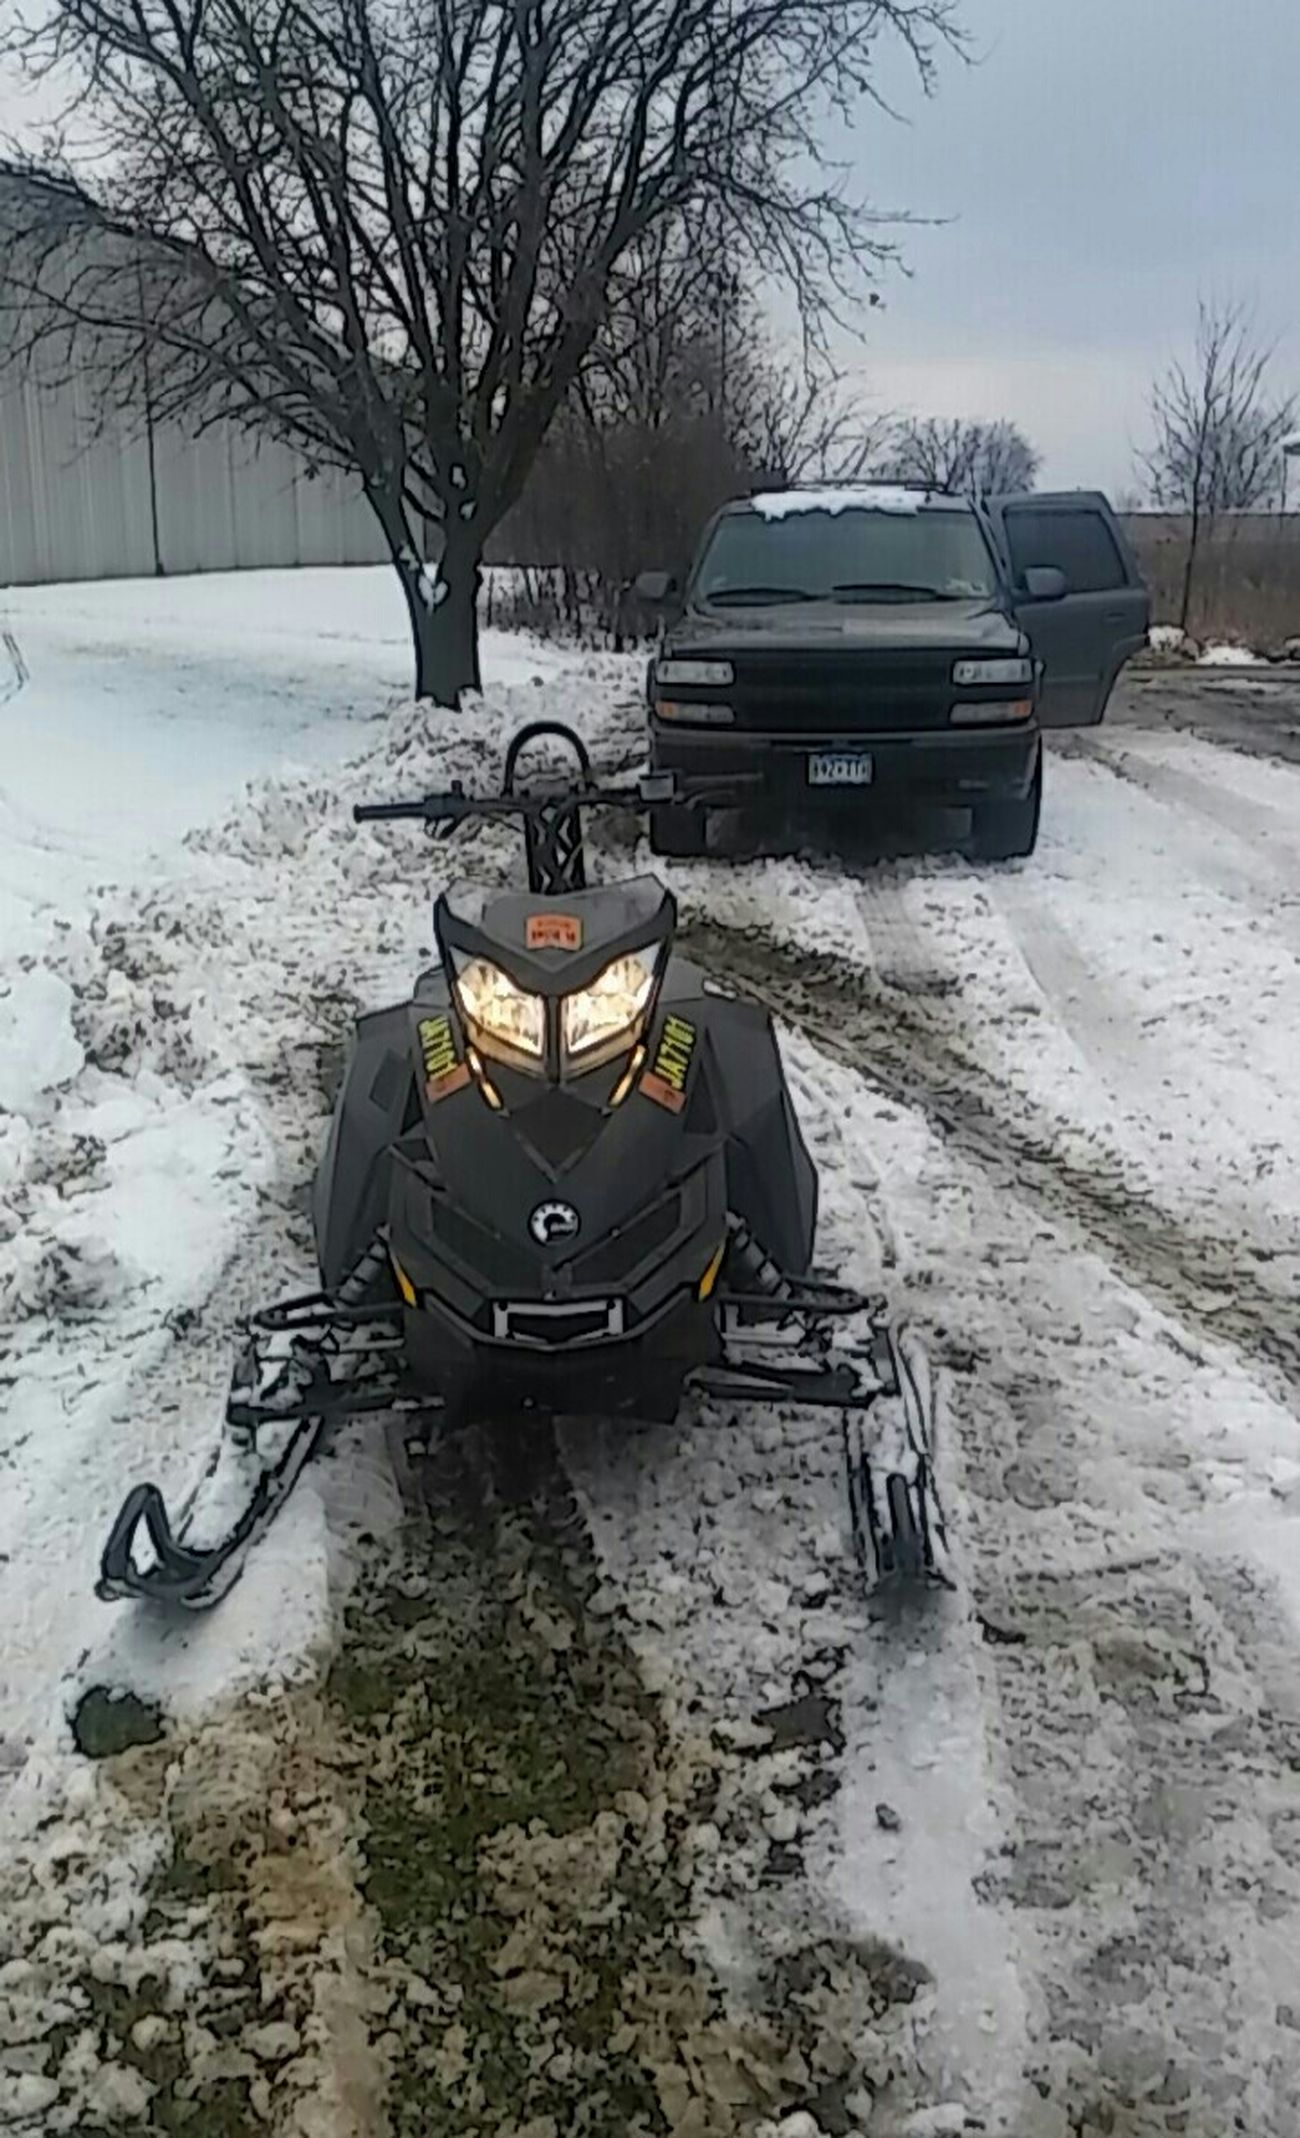 Winter Mode Of Transport Outdoors My Point Of View Check This Out Capture The Moment Boys And There Toys Snowmobiling First Snow My Point O View Cold Temperature